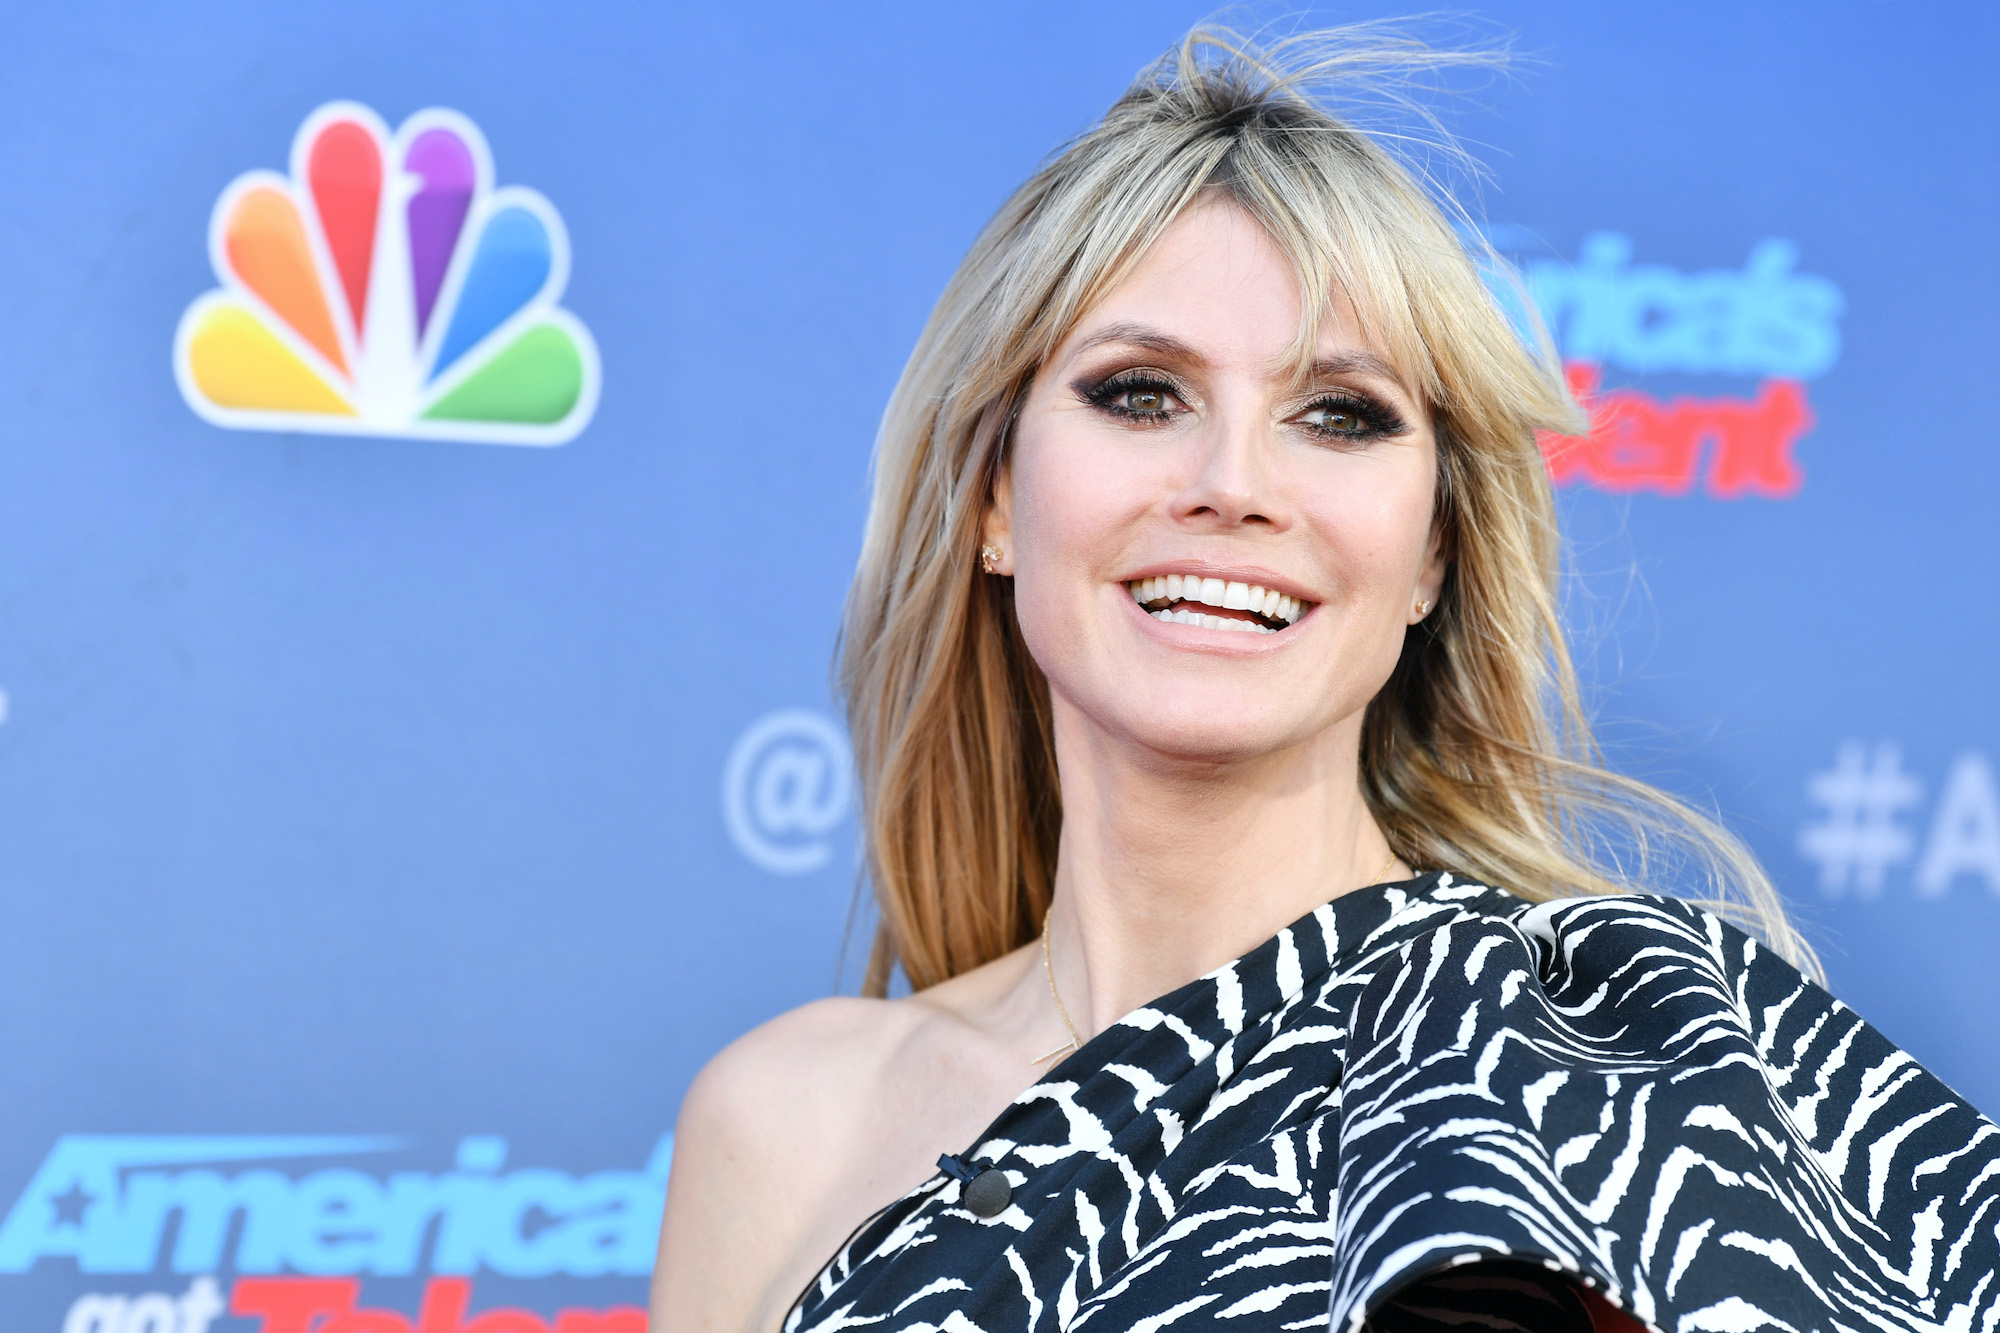 Heidi Klum Carries A Bag Of Her Baby Teeth At All Times